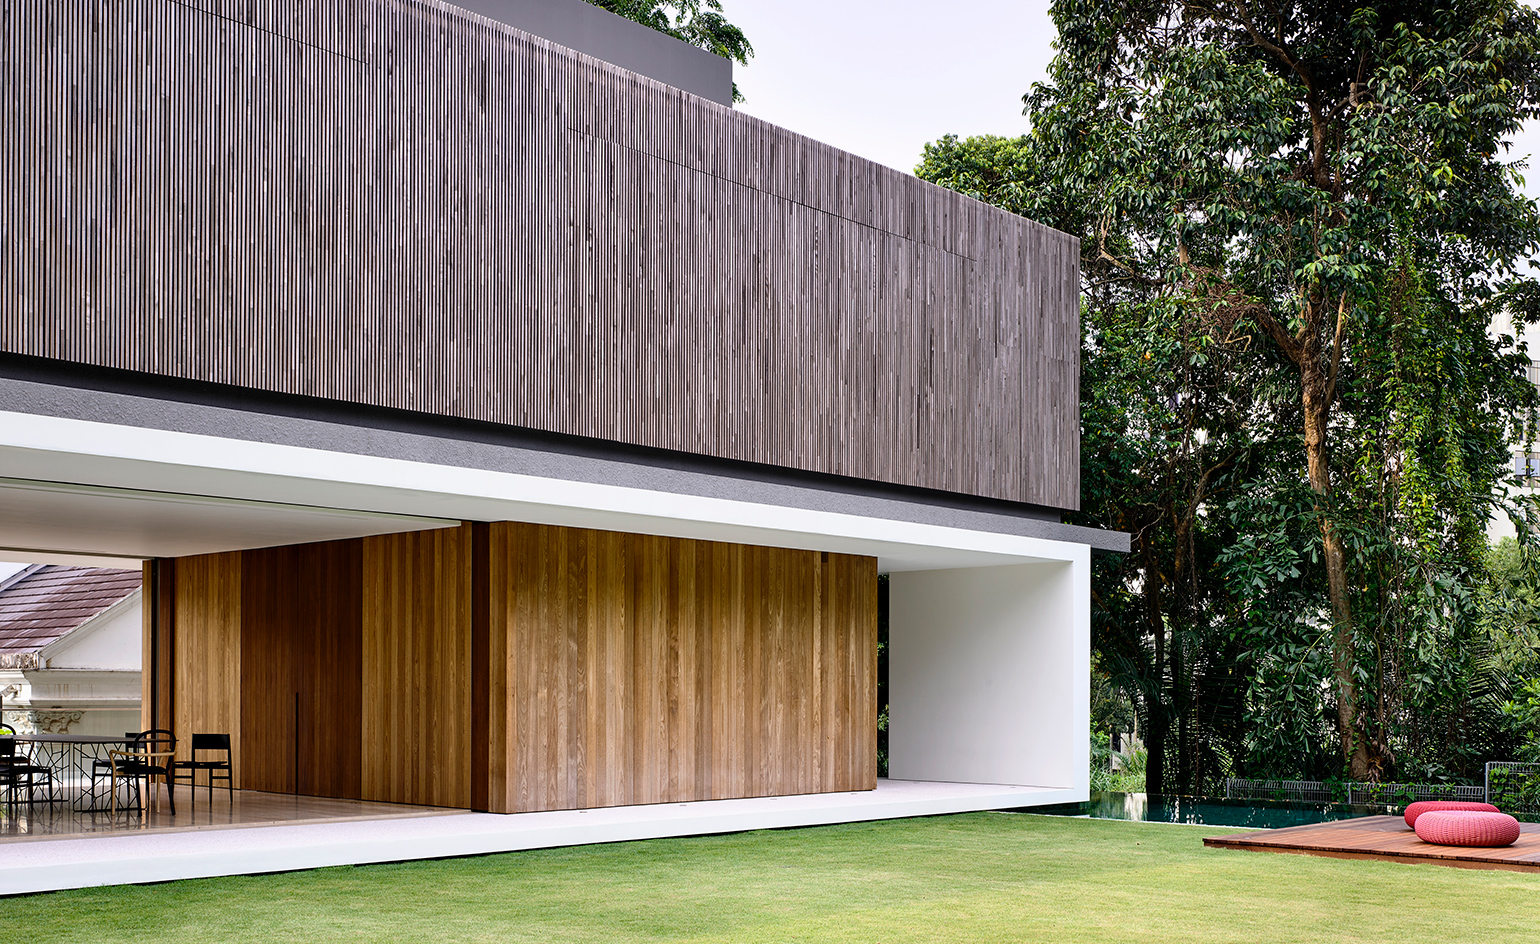 The structure comprises three neatly stacked volumes of reinforced concrete and modern design